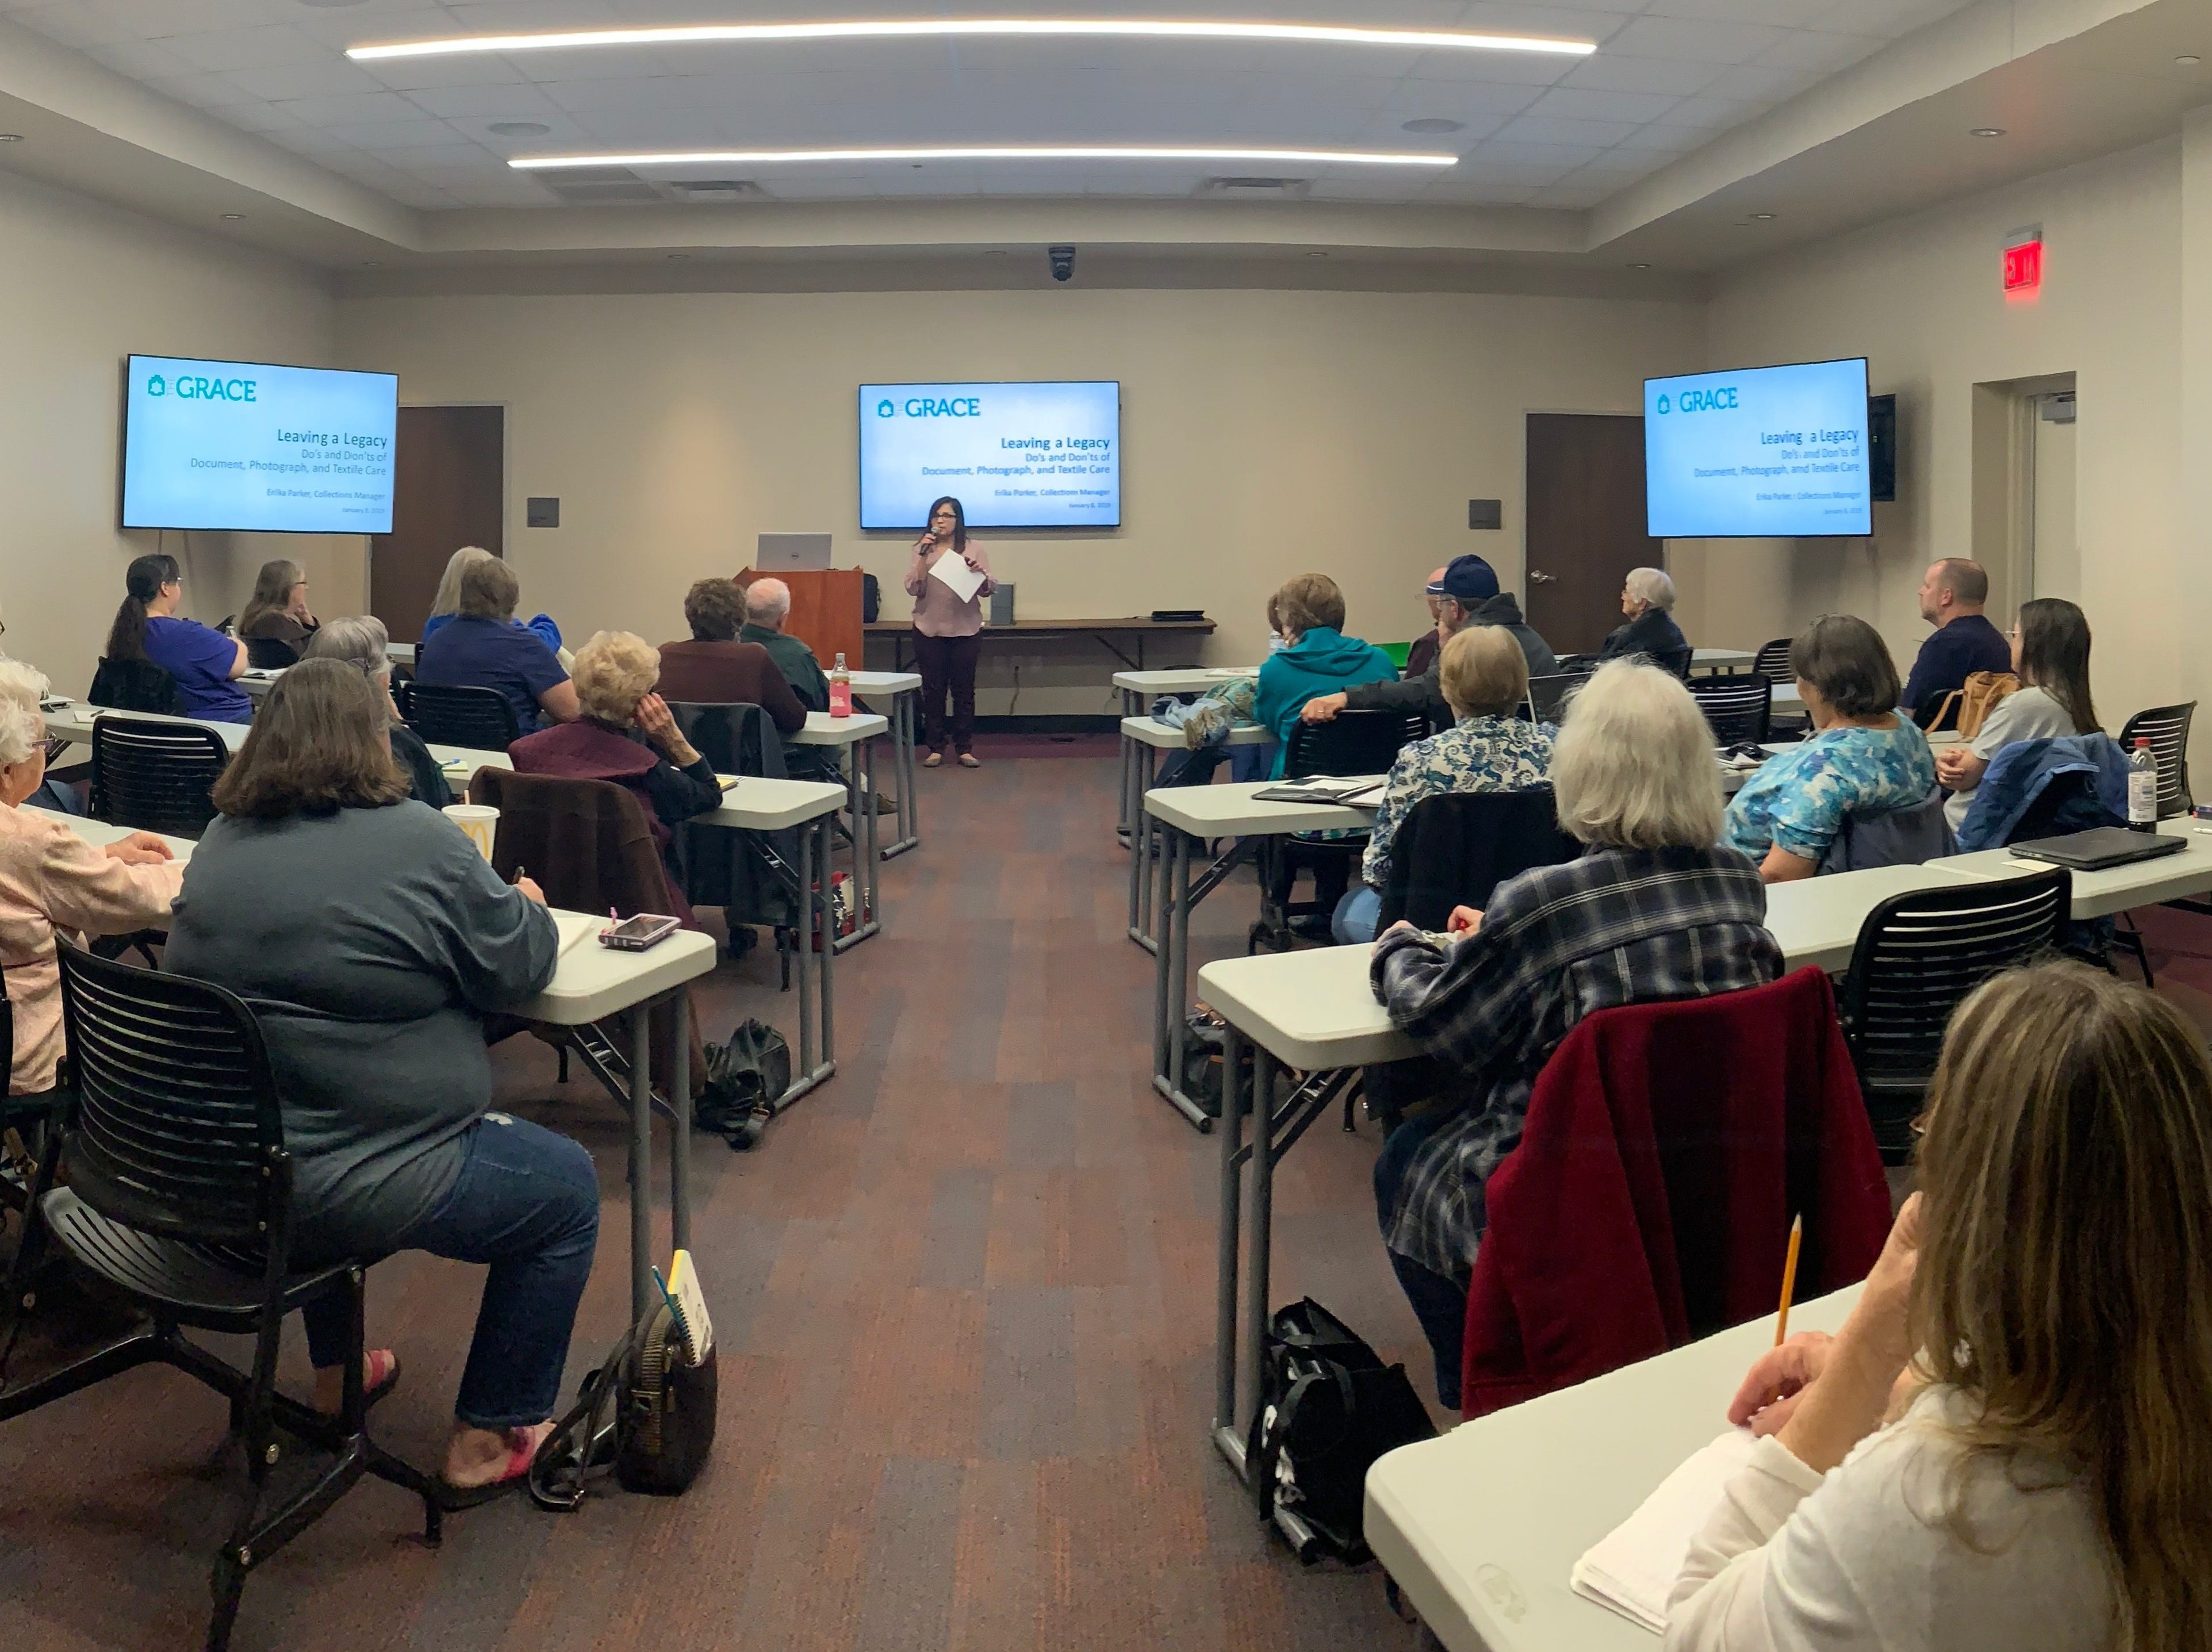 Erika Aragon Parker, collections manager at The Grace Museum, gives a presentation to the West Texas Genealogical Society about preserving family heirlooms, photographs and documents.